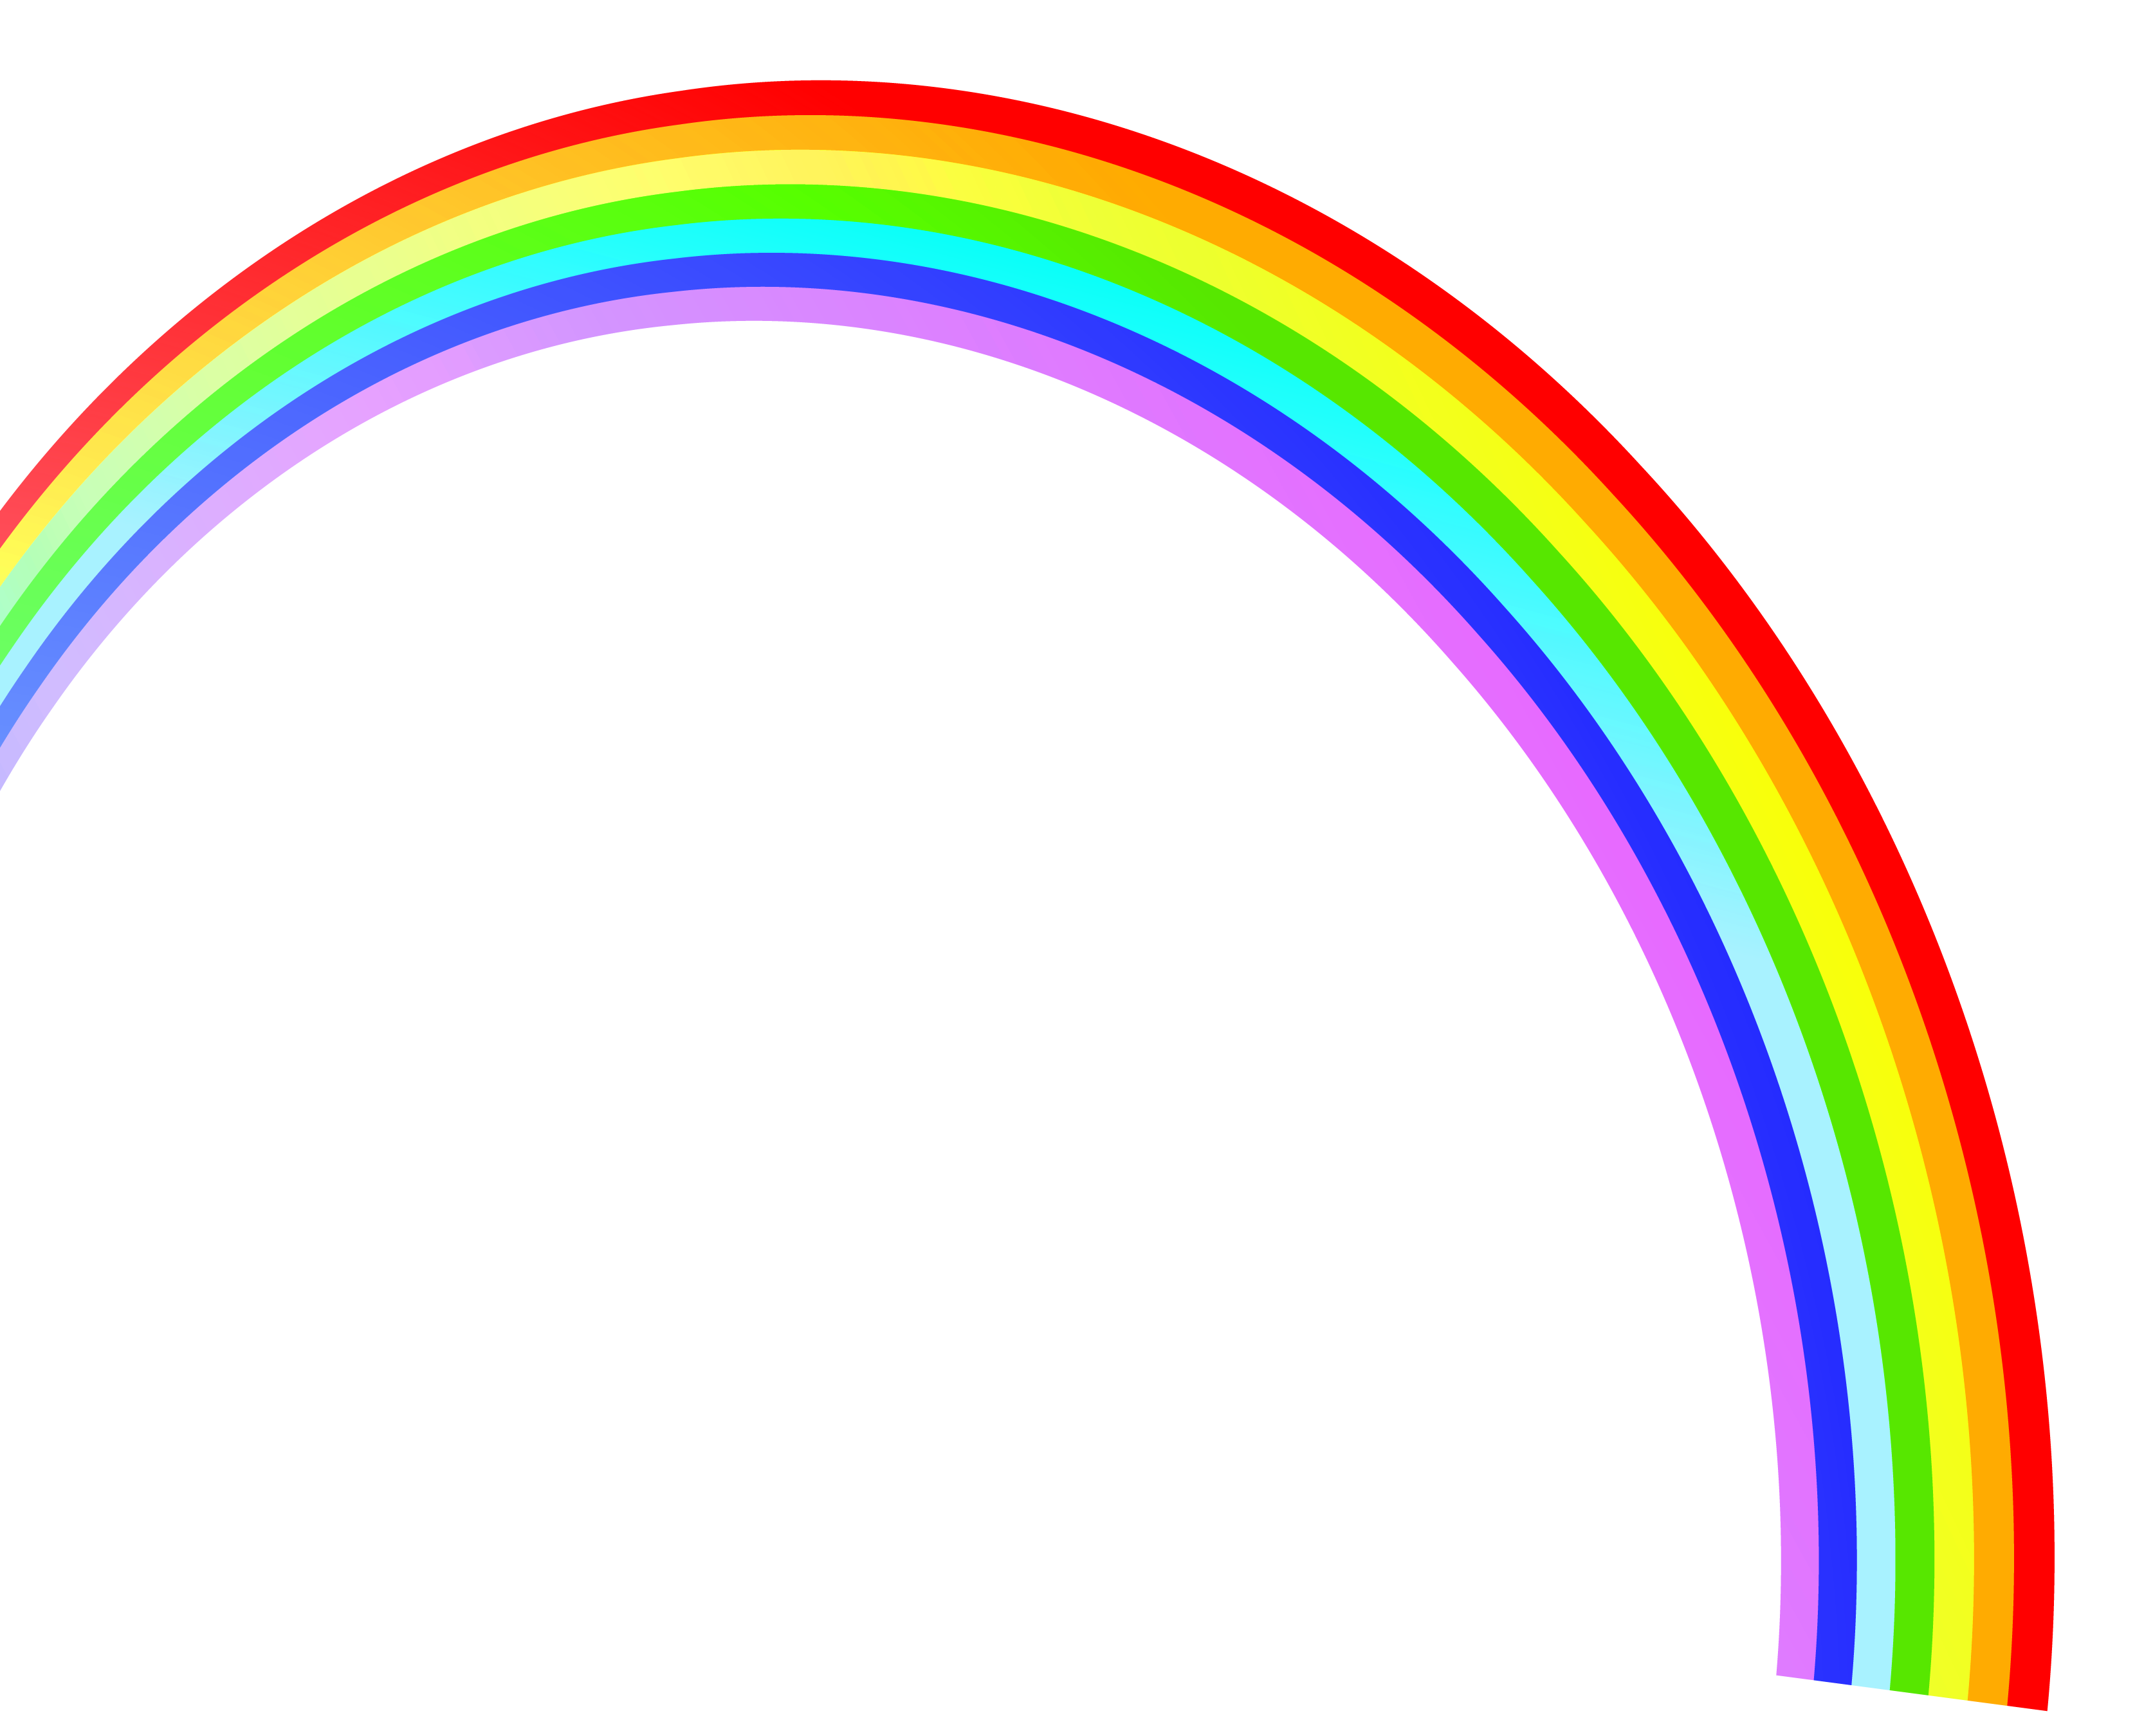 The Rainbow Png - Rainbow PNG image